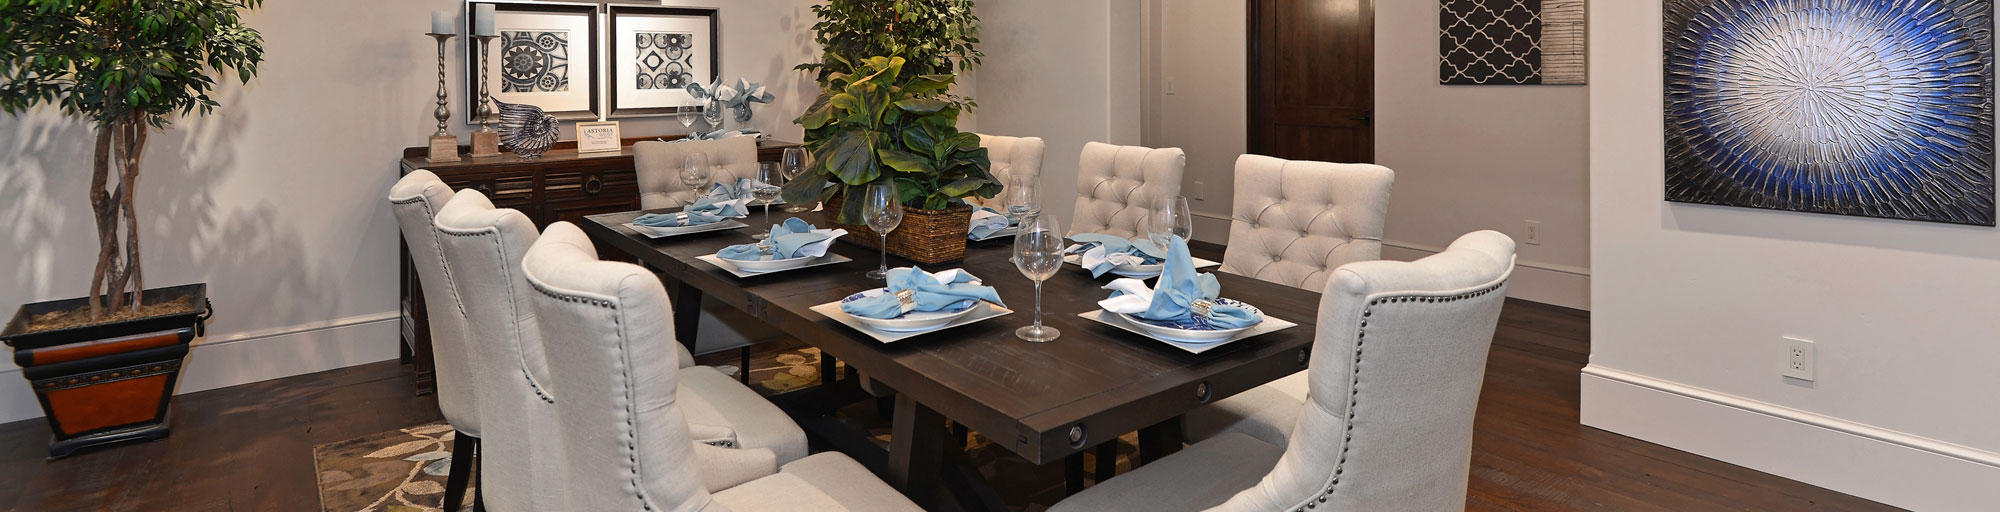 Dining room staging with cream and blue accents